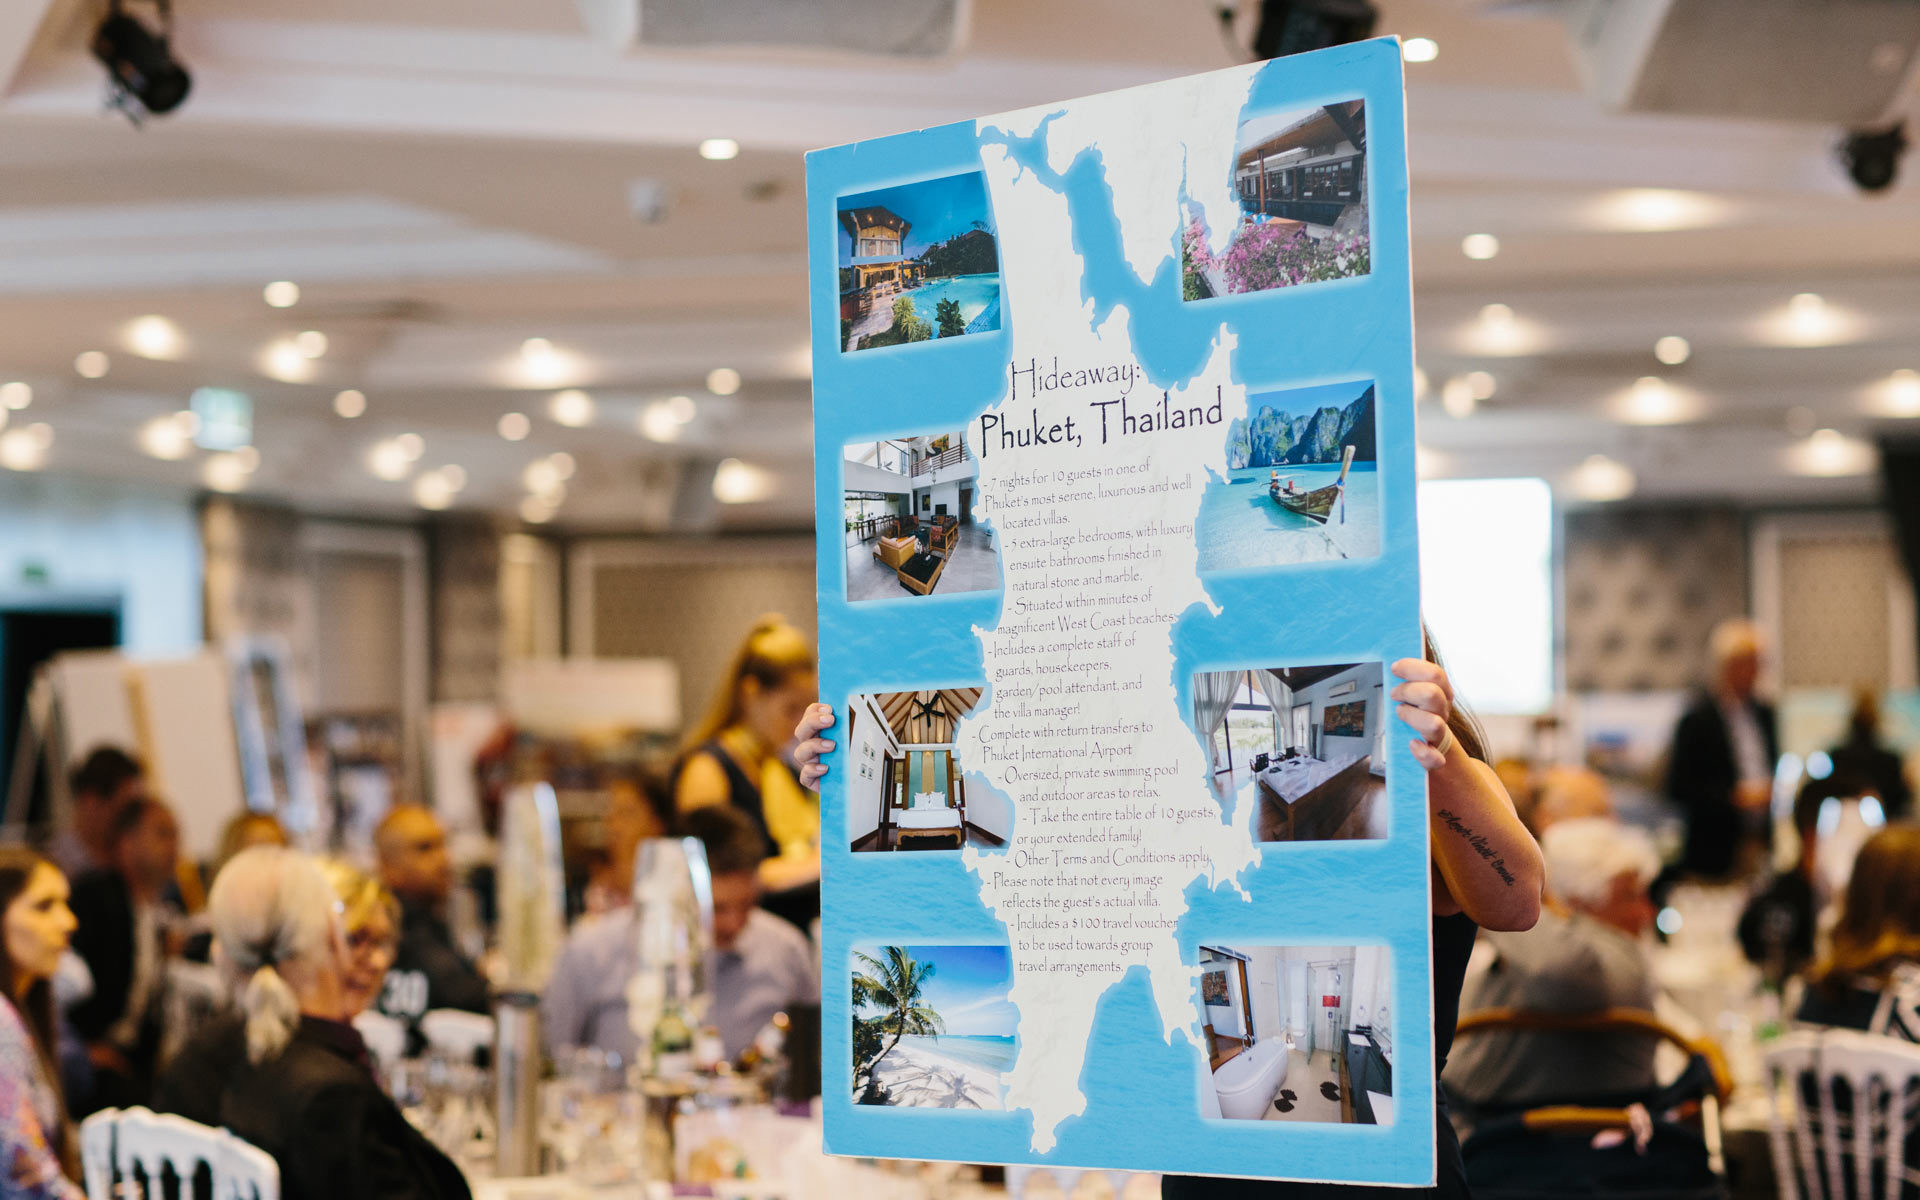 Auction-items-for-fundraisers---Holiday-package-Phuket-for-silent-auctions